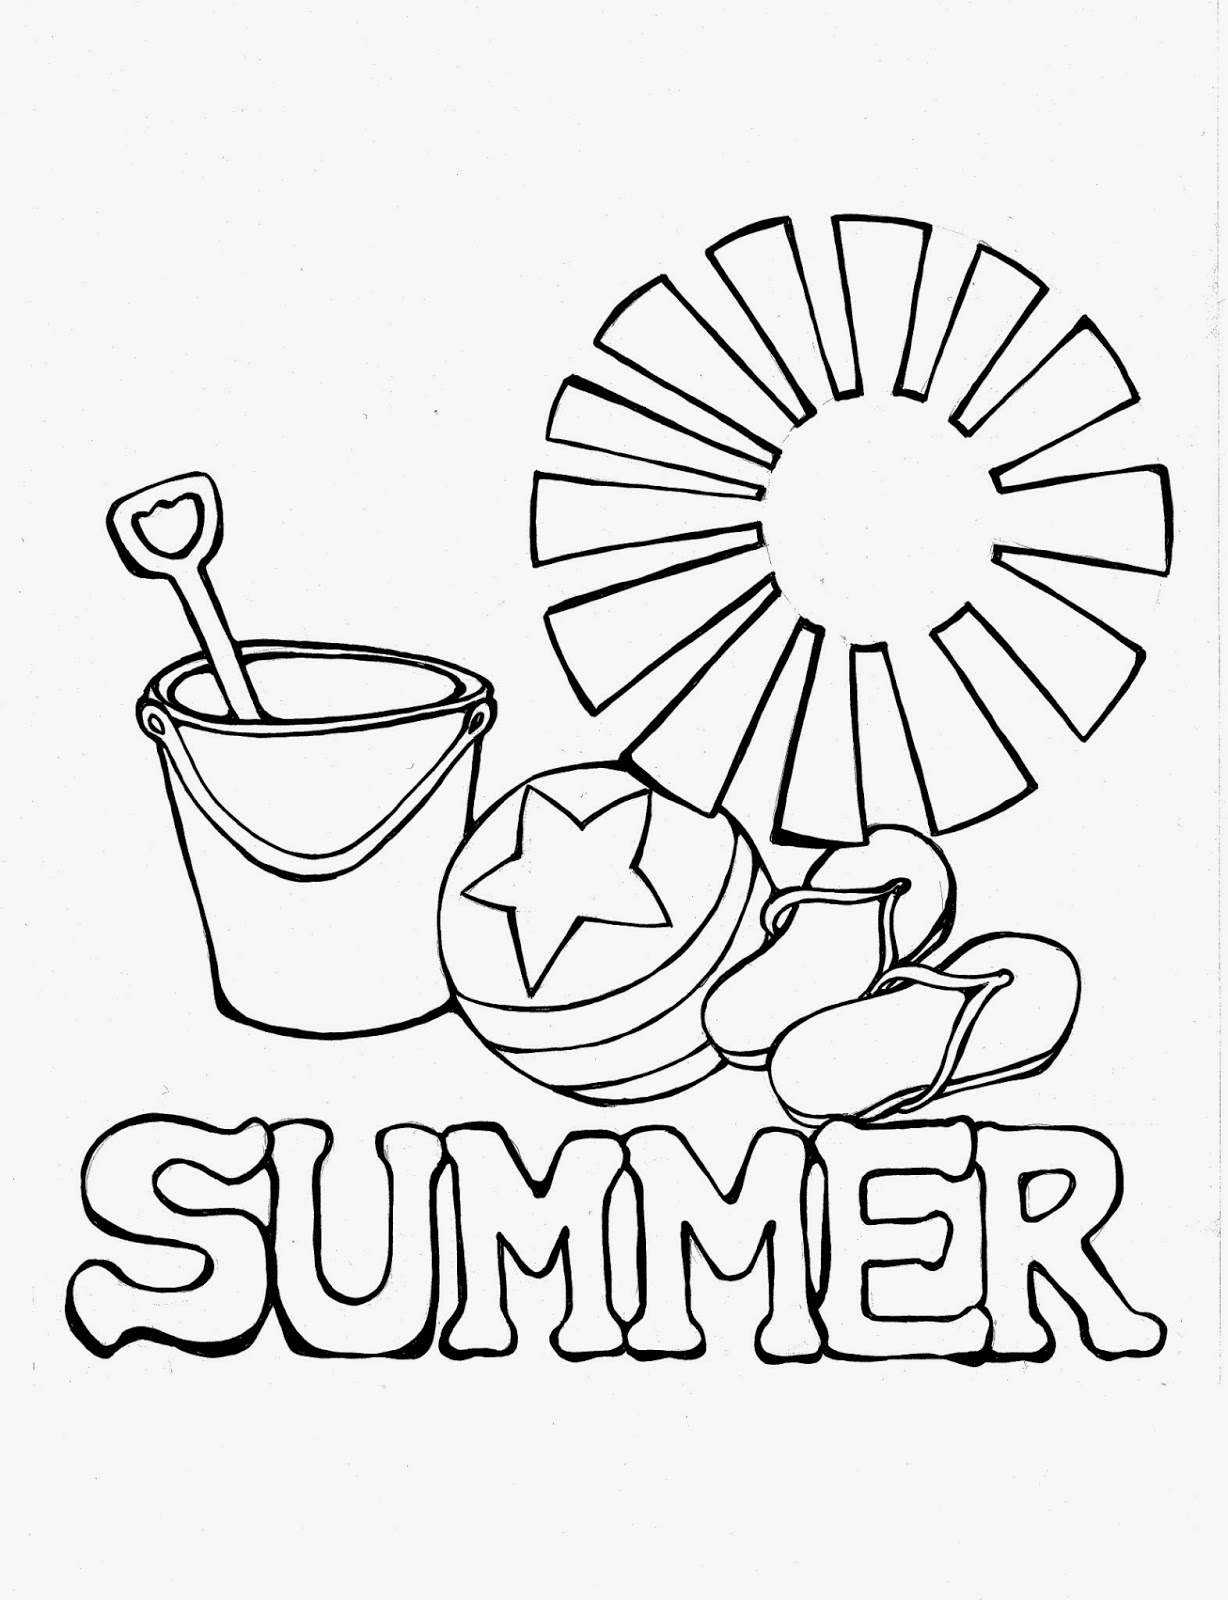 Summer Drawing For Kids at GetDrawings.com | Free for personal use ...